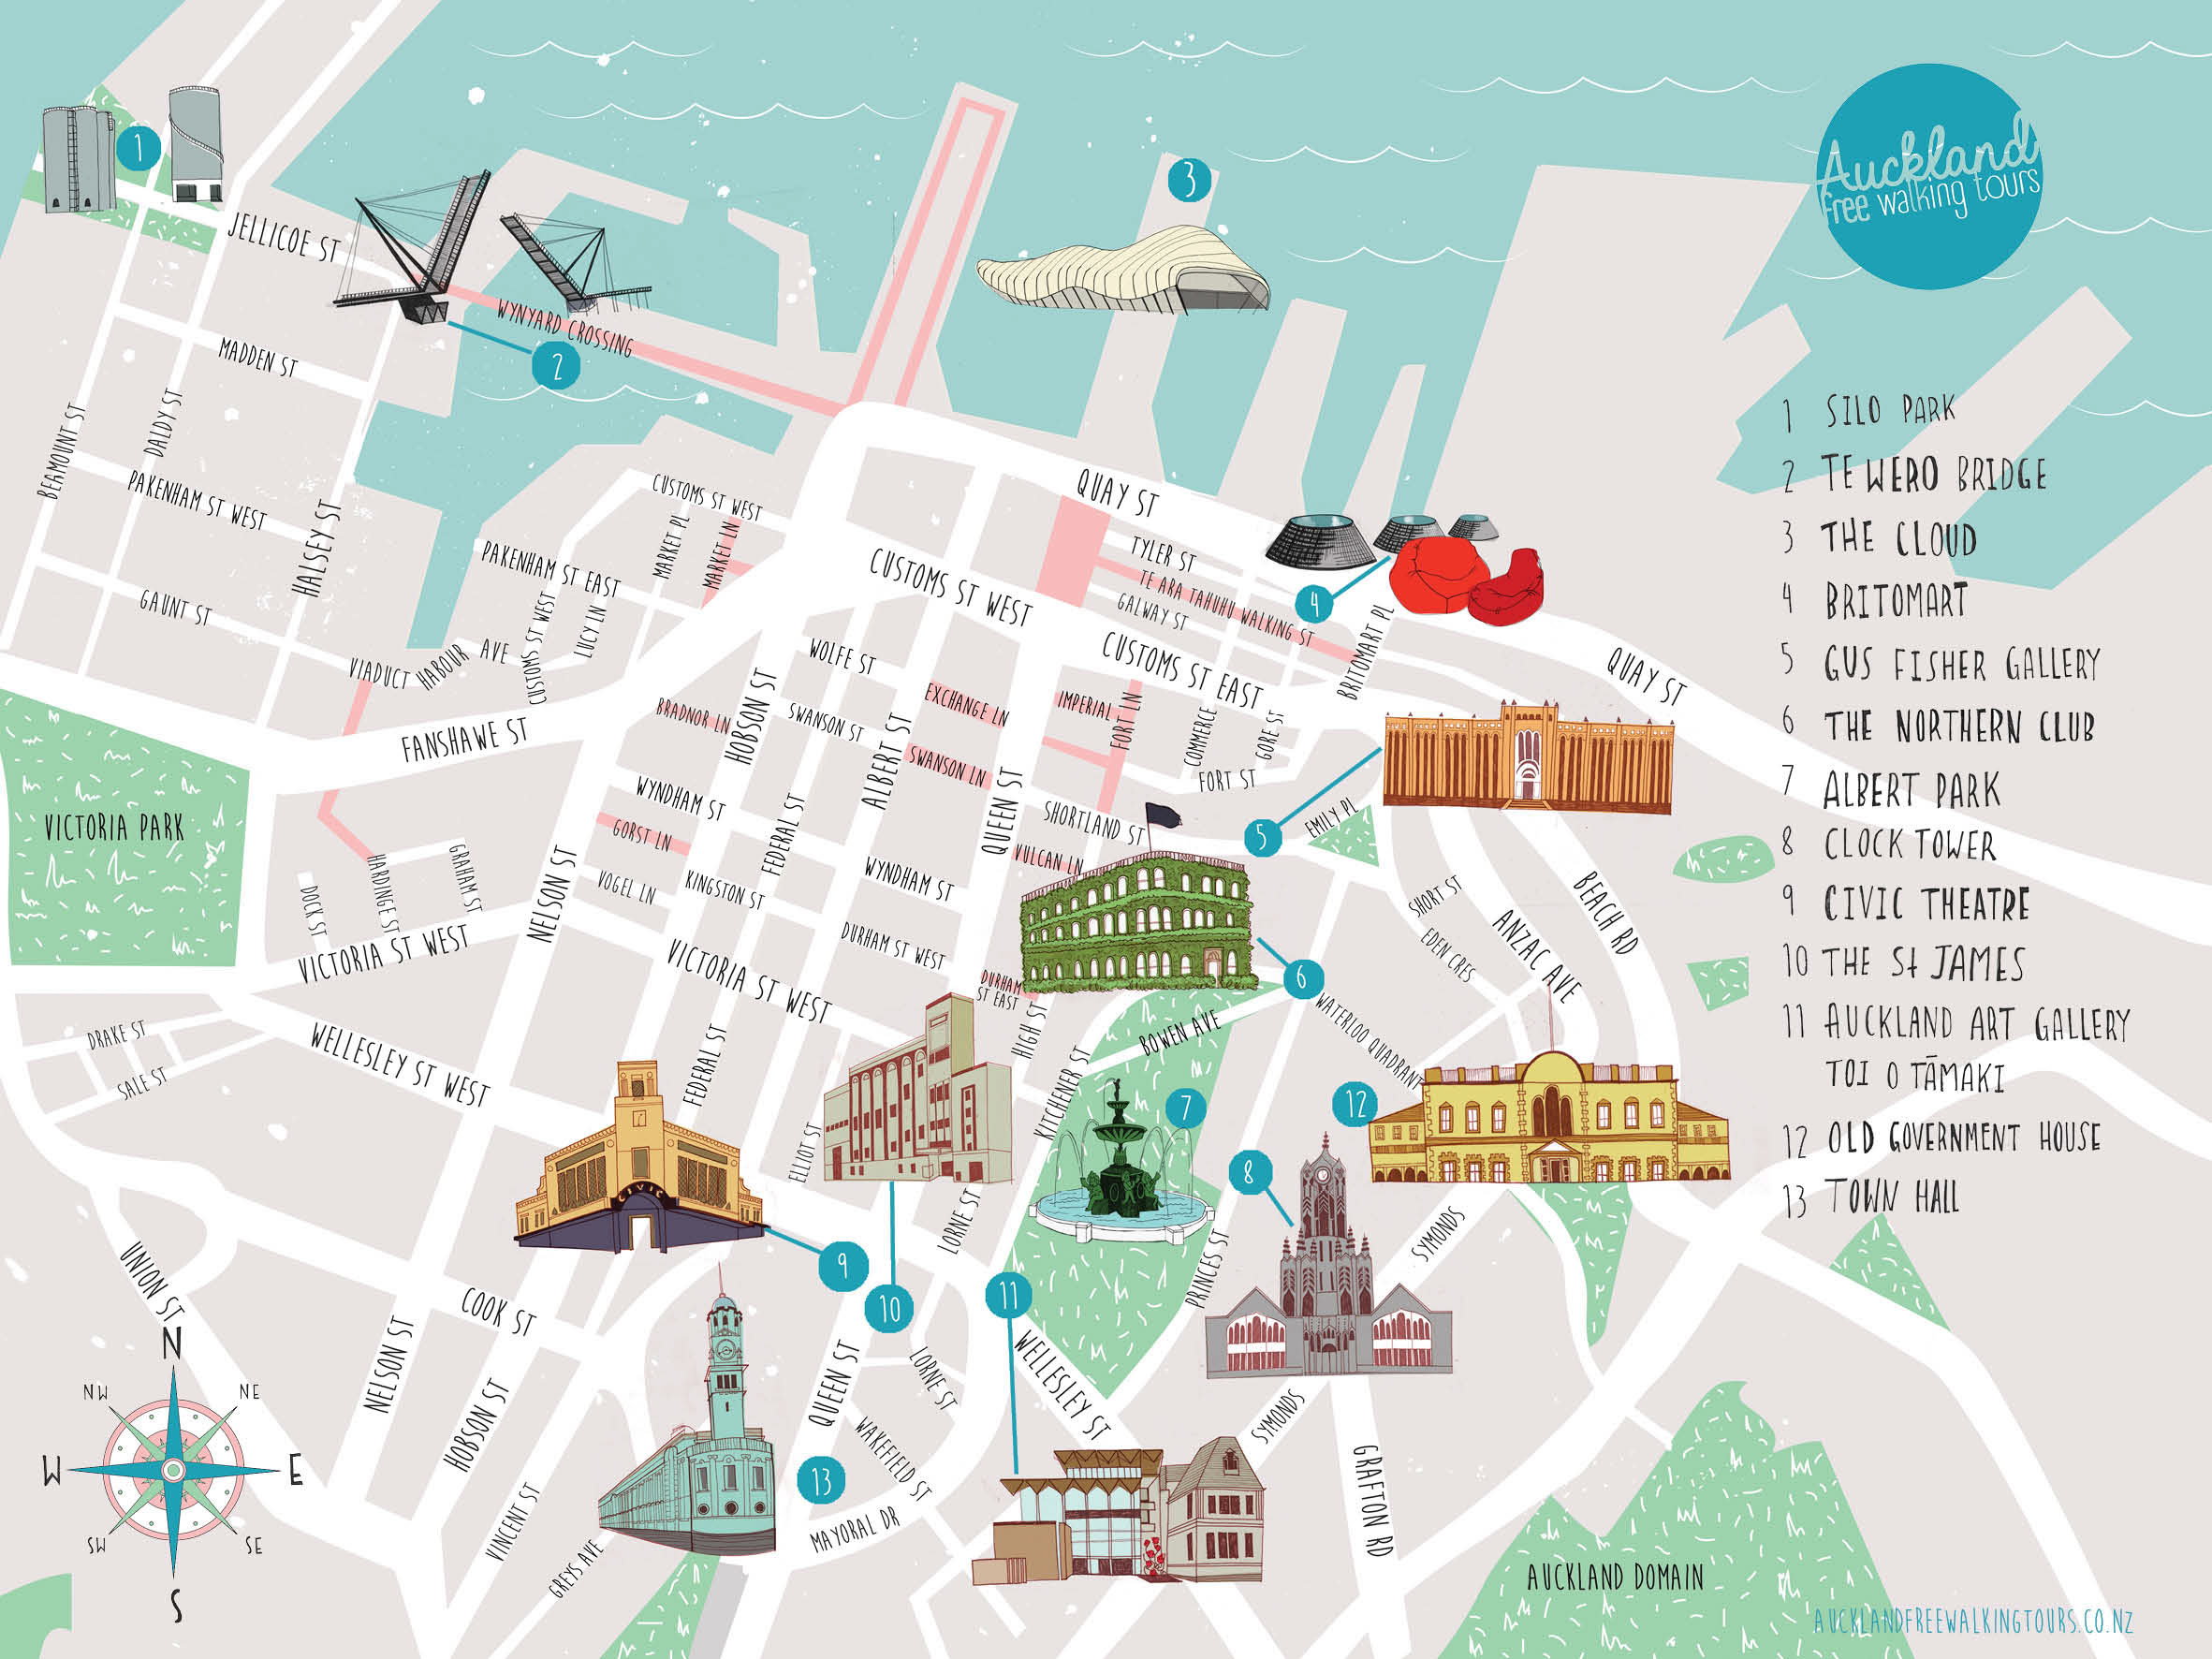 Map Auckland Free Walking Tours On Behance - Tours map